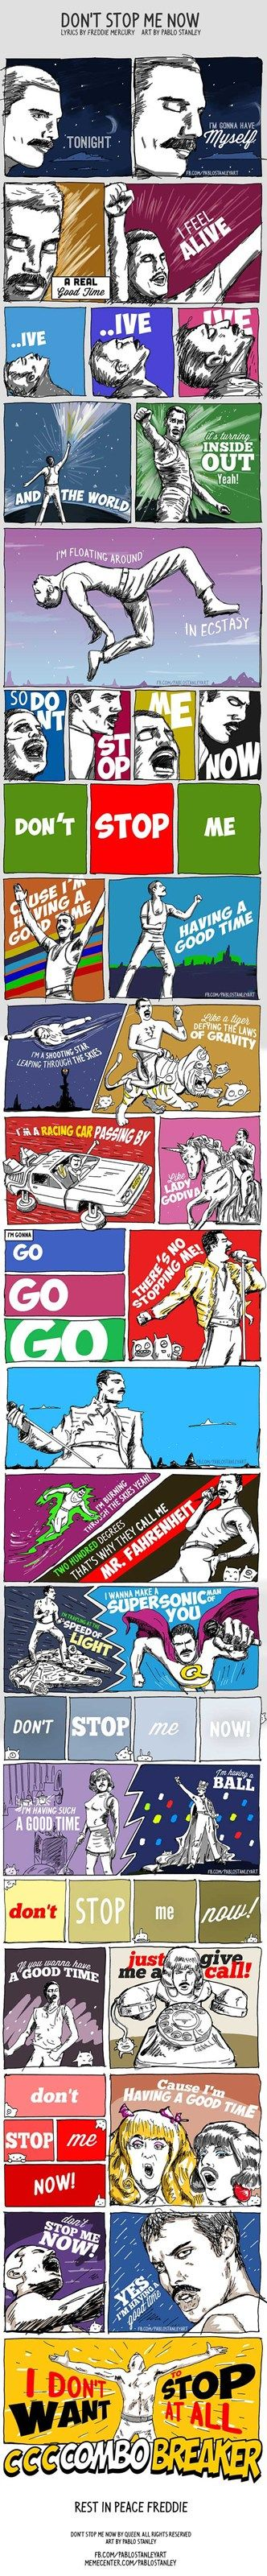 This has all the good things....Freddie, a BTTF and Star Wars refrence....it's so 80s